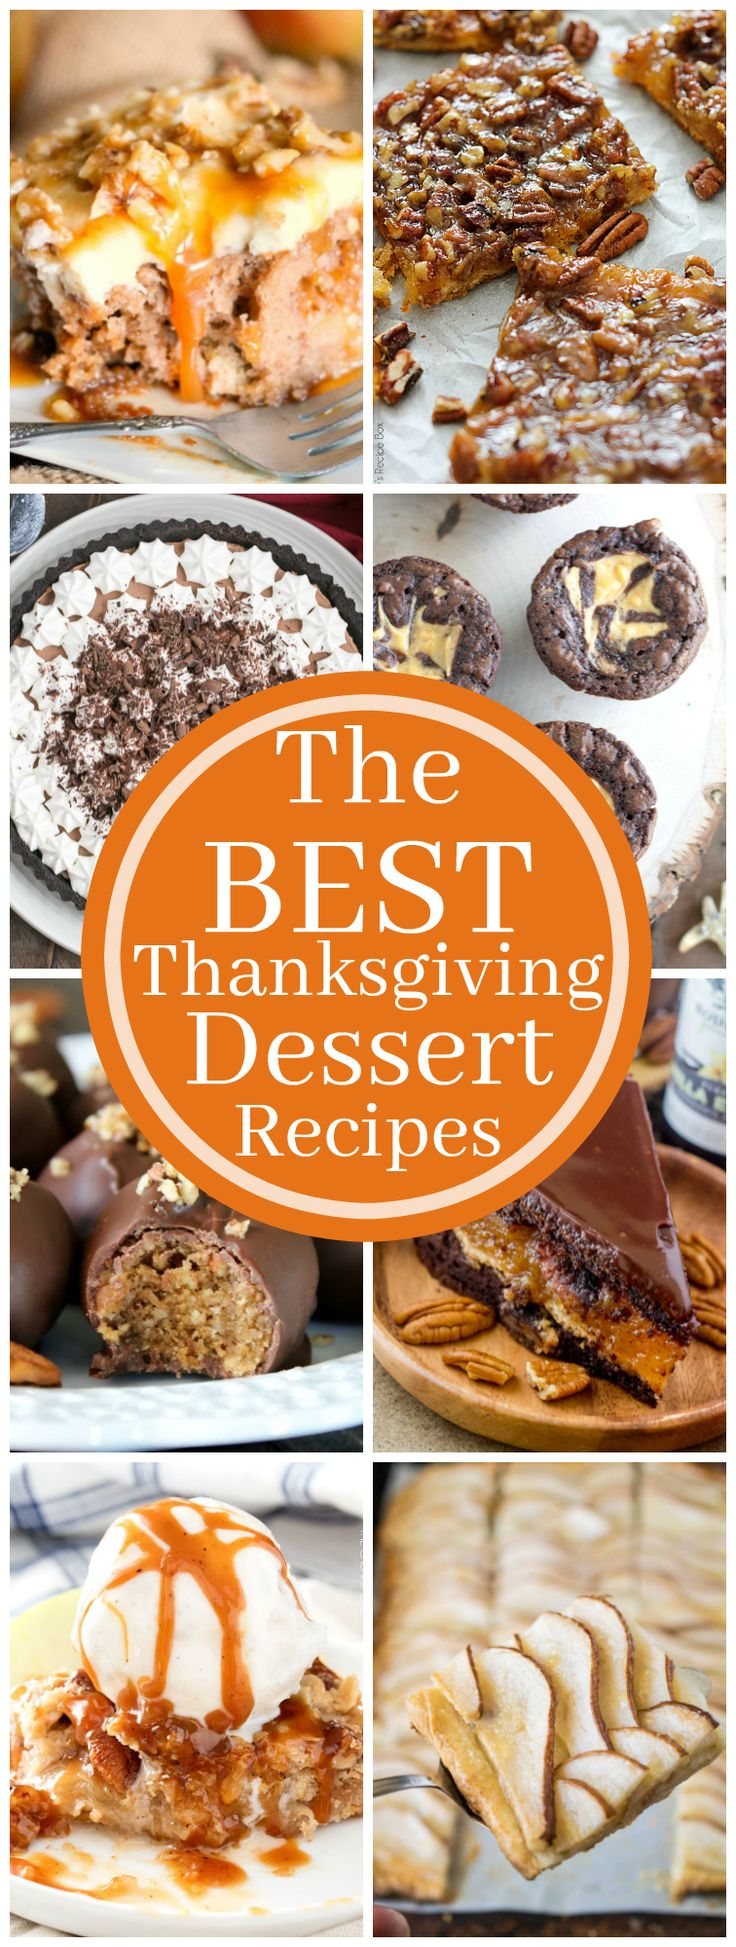 Thanksgiving is fast approaching so here is The Best Thanksgiving Dessert Recipes that you could ever find to end out your holiday meal! If you haven't been able to give it much thought yet about how you're going to end your delicious, already amazing Thanksgiving meal, then boy have I[Read more]